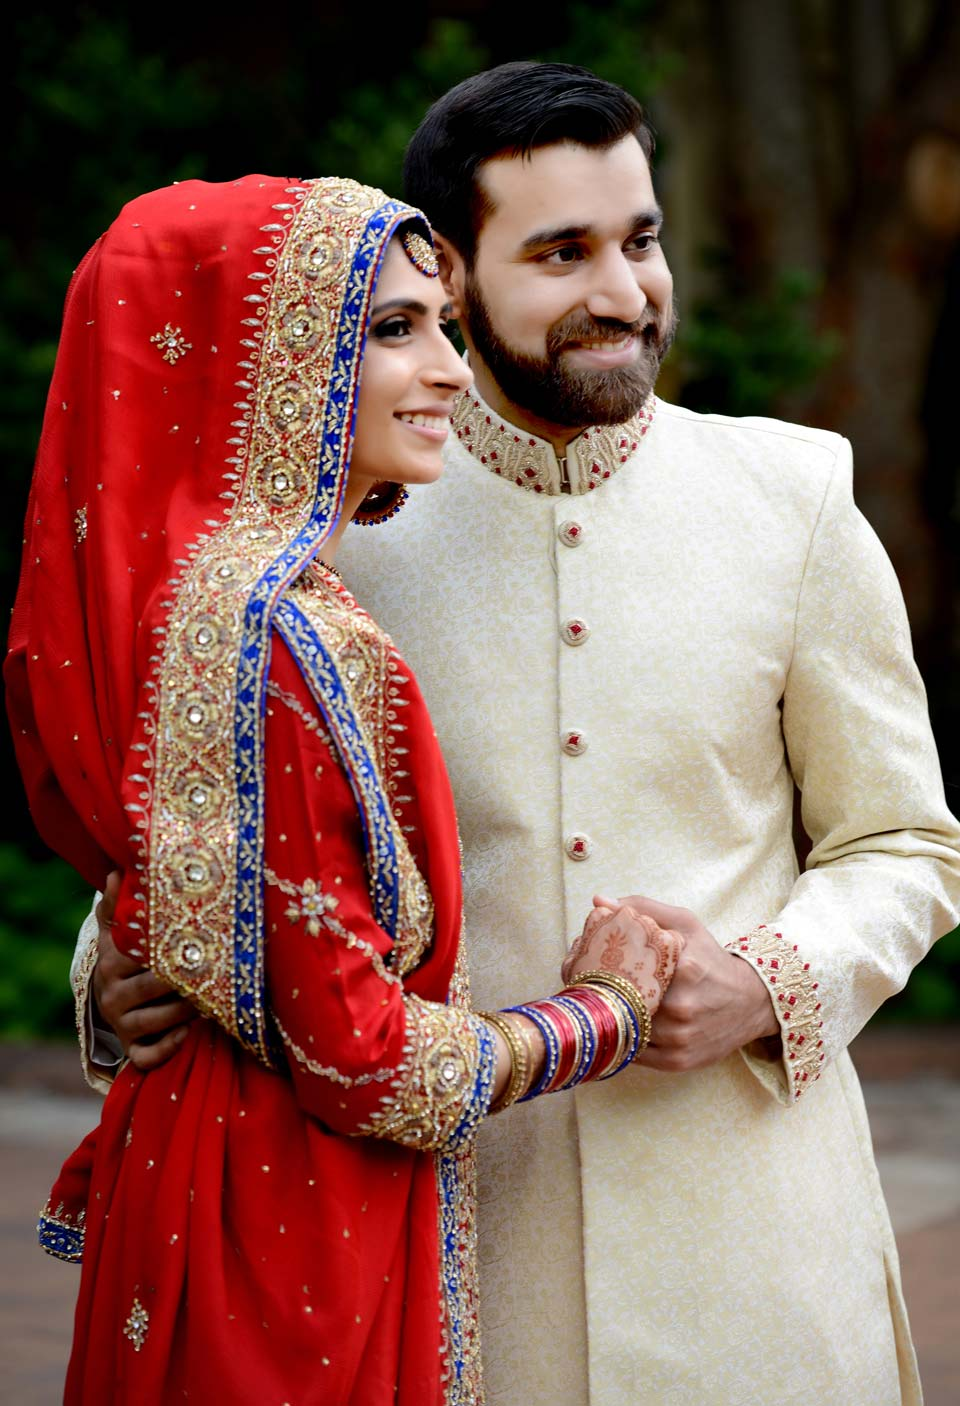 Hammad (groom) and Aneela (bride) posing in the wedding day photoshoot Pix